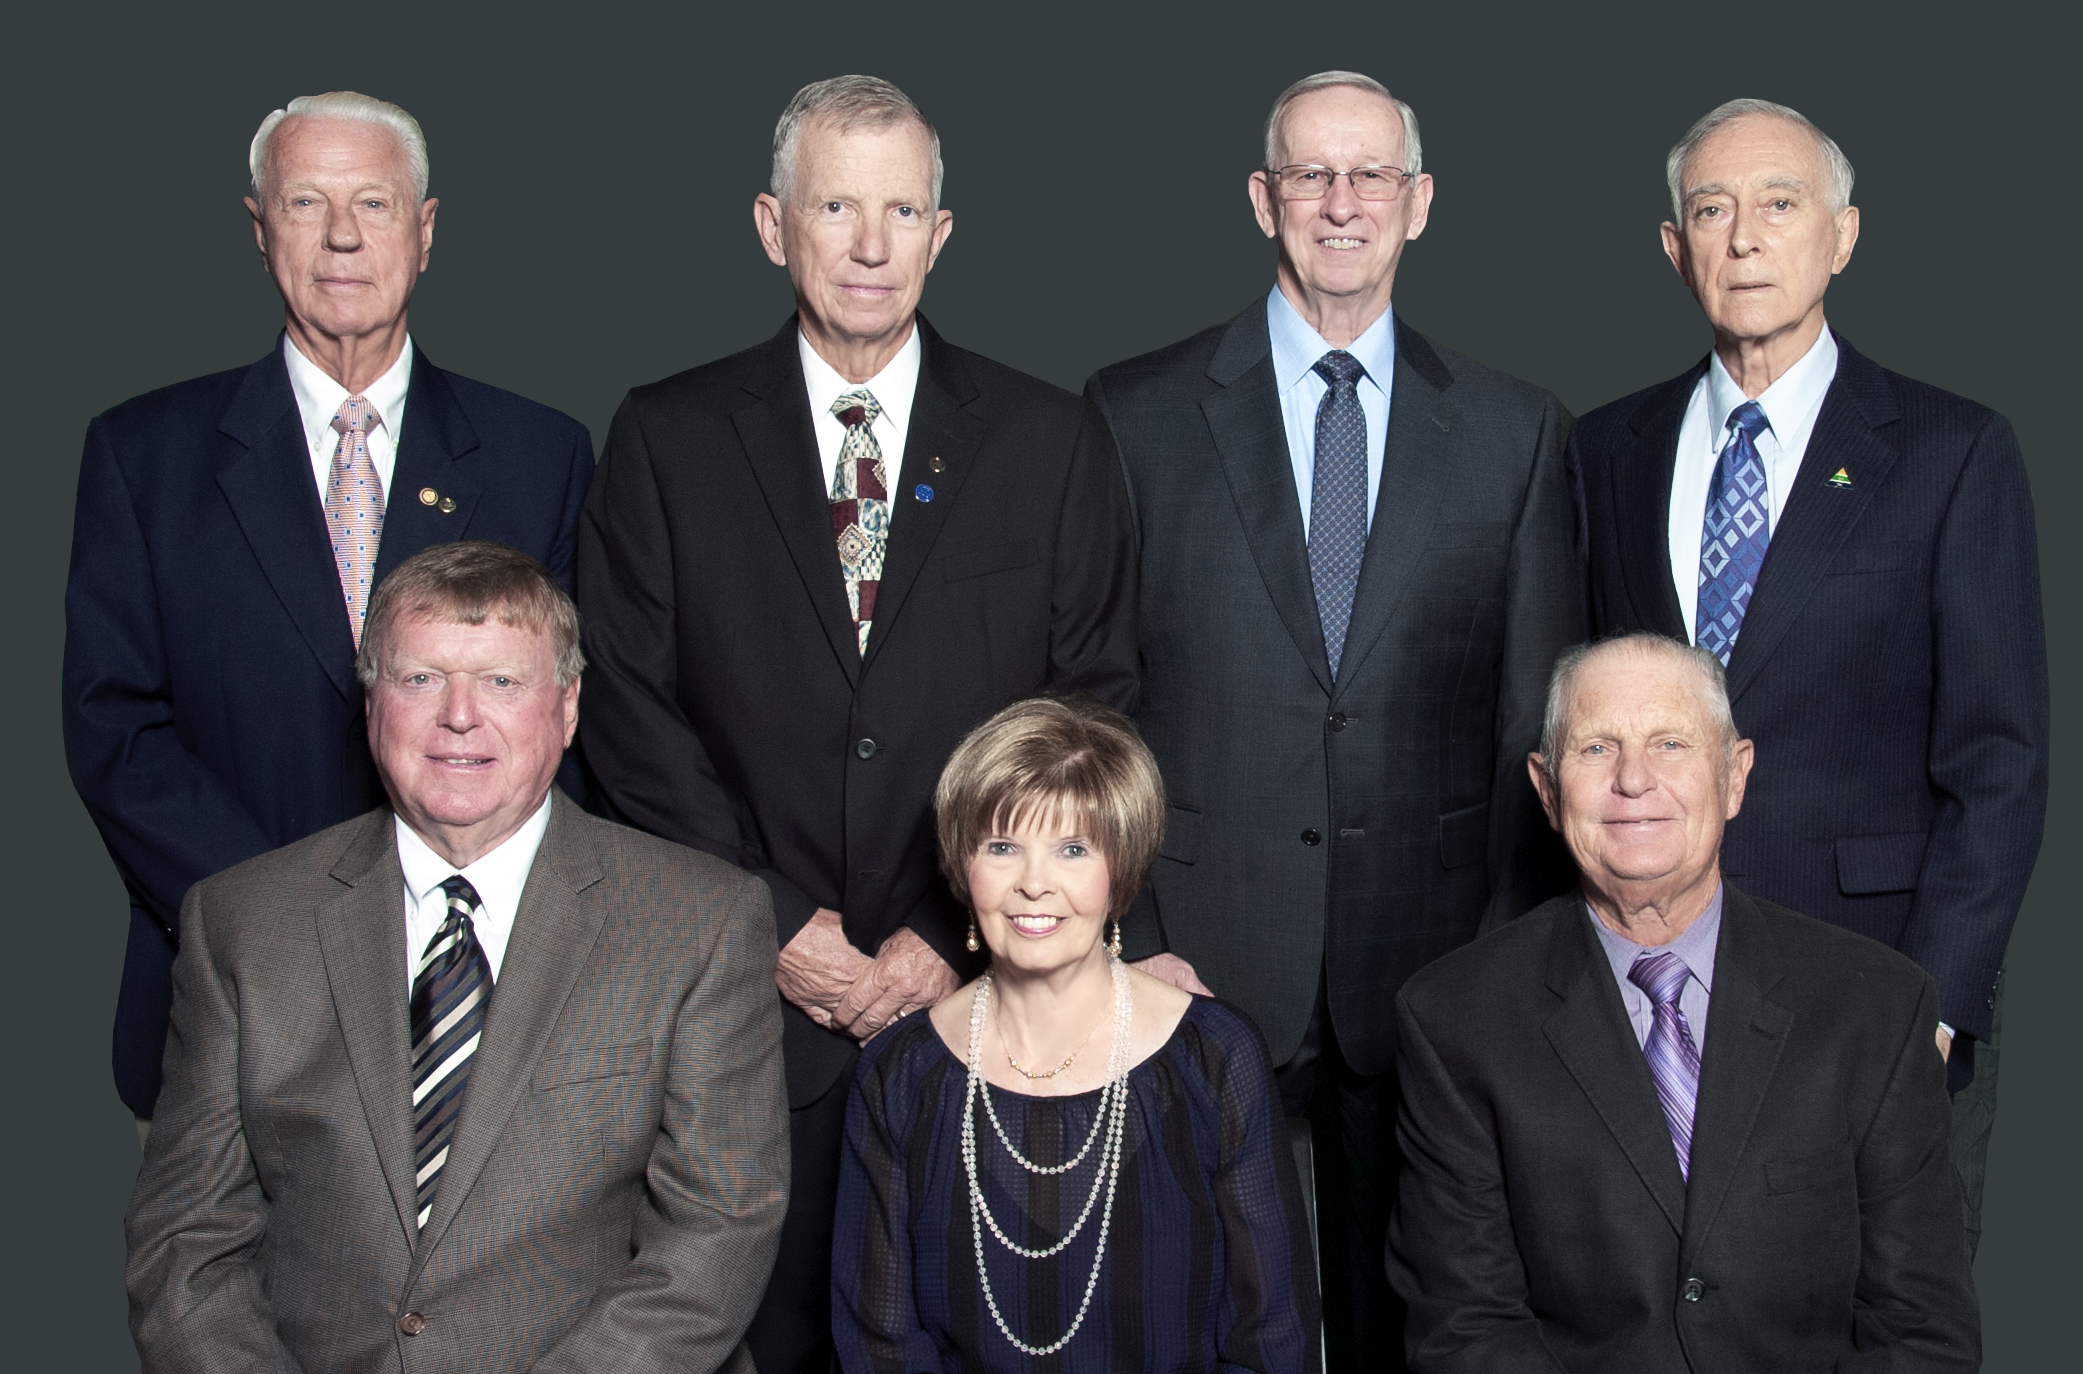 Group shot of the Board of Directors.